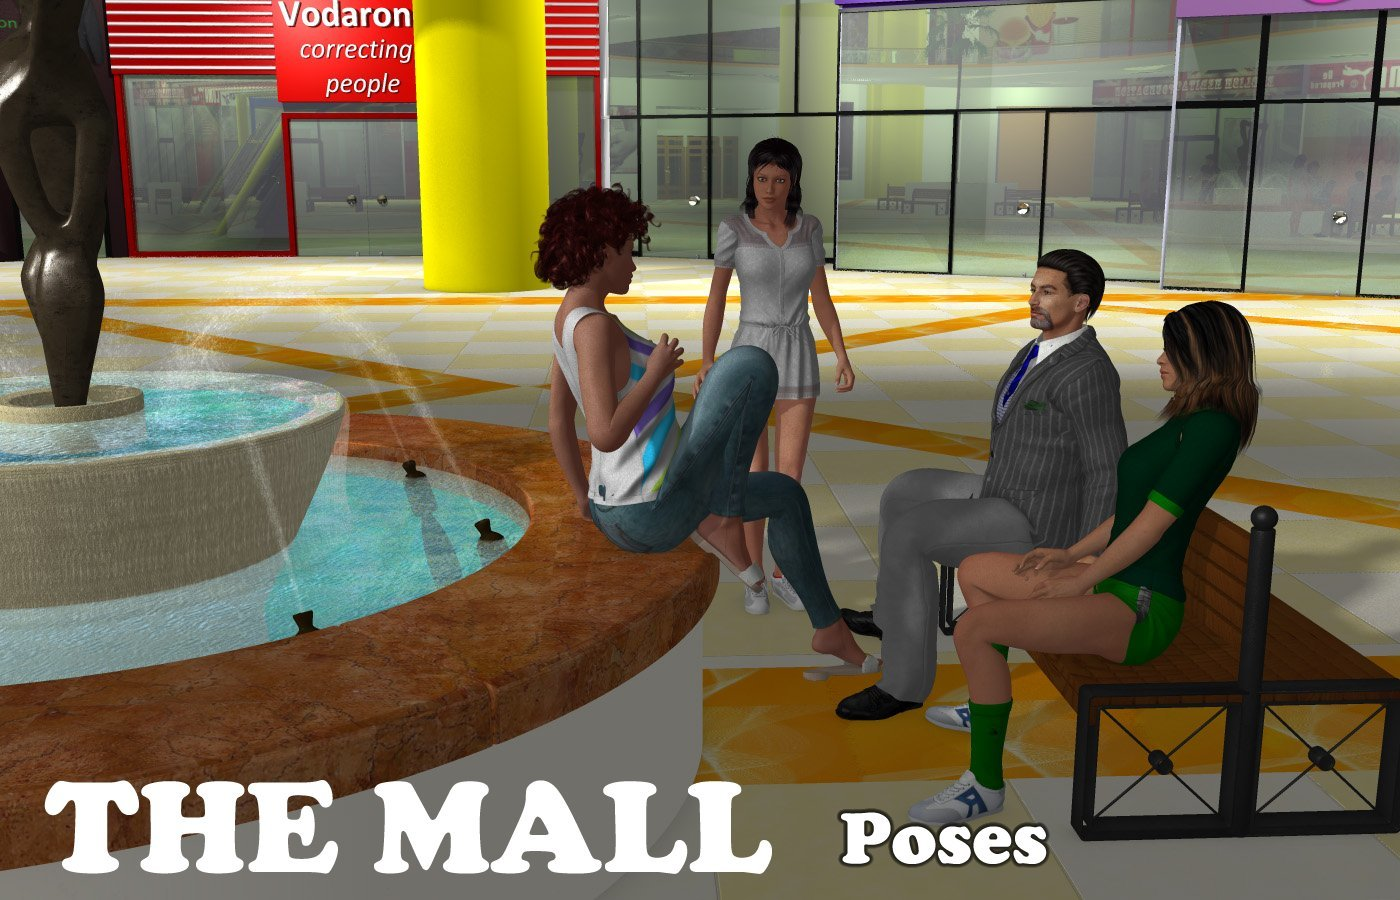 The Mall poses